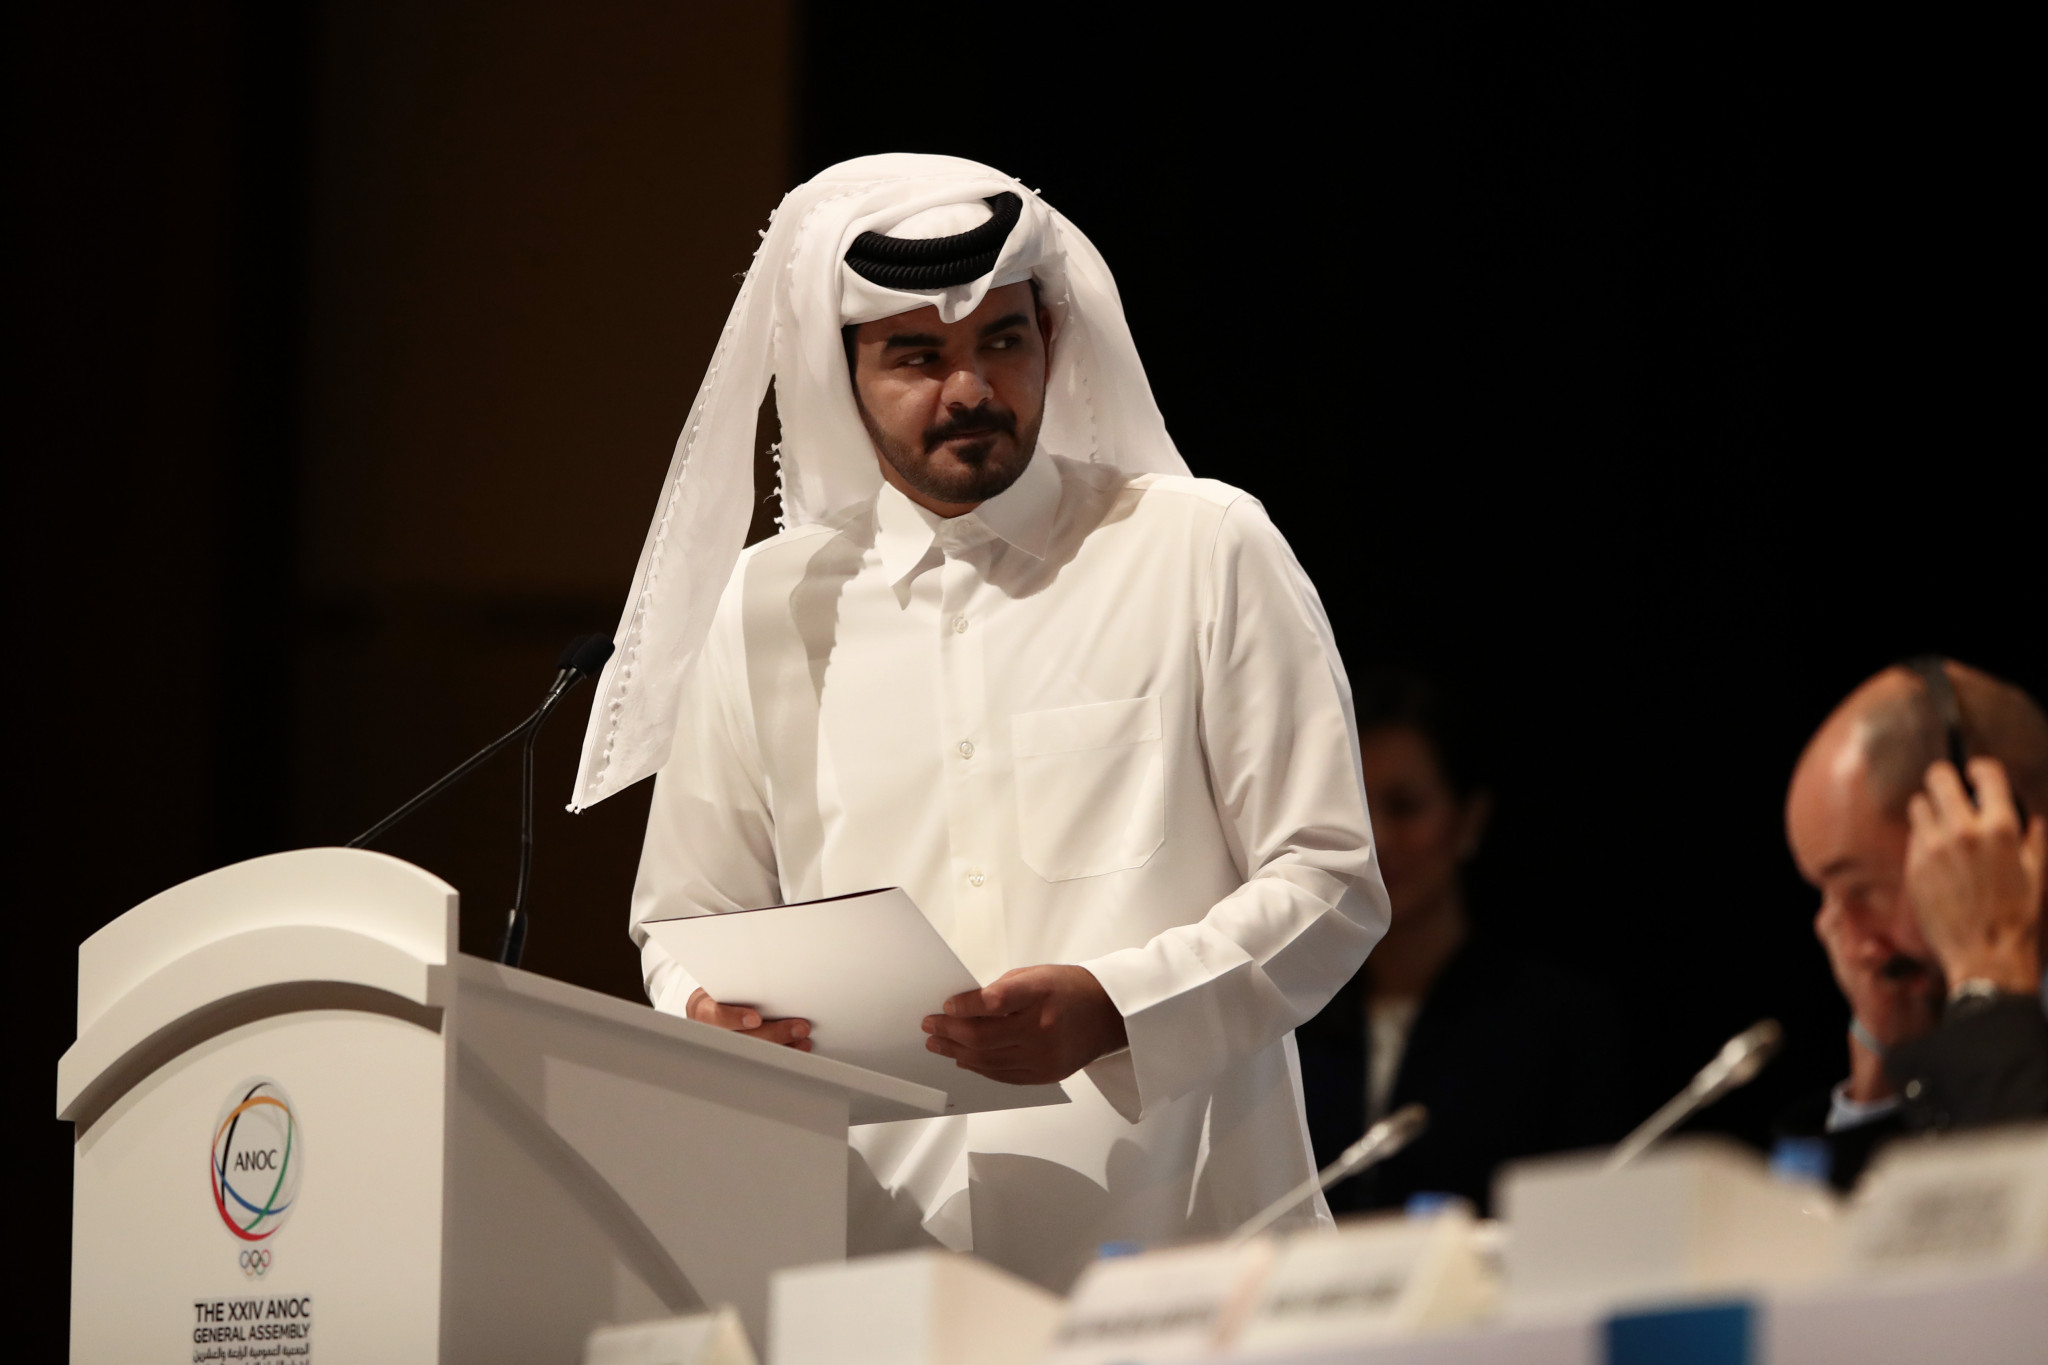 QOC President Sheikh Joaan bin Hamad Al-Thani said his organisation wanted to repay Olympics organisers ahead of Tokyo 2020 ©Getty Images